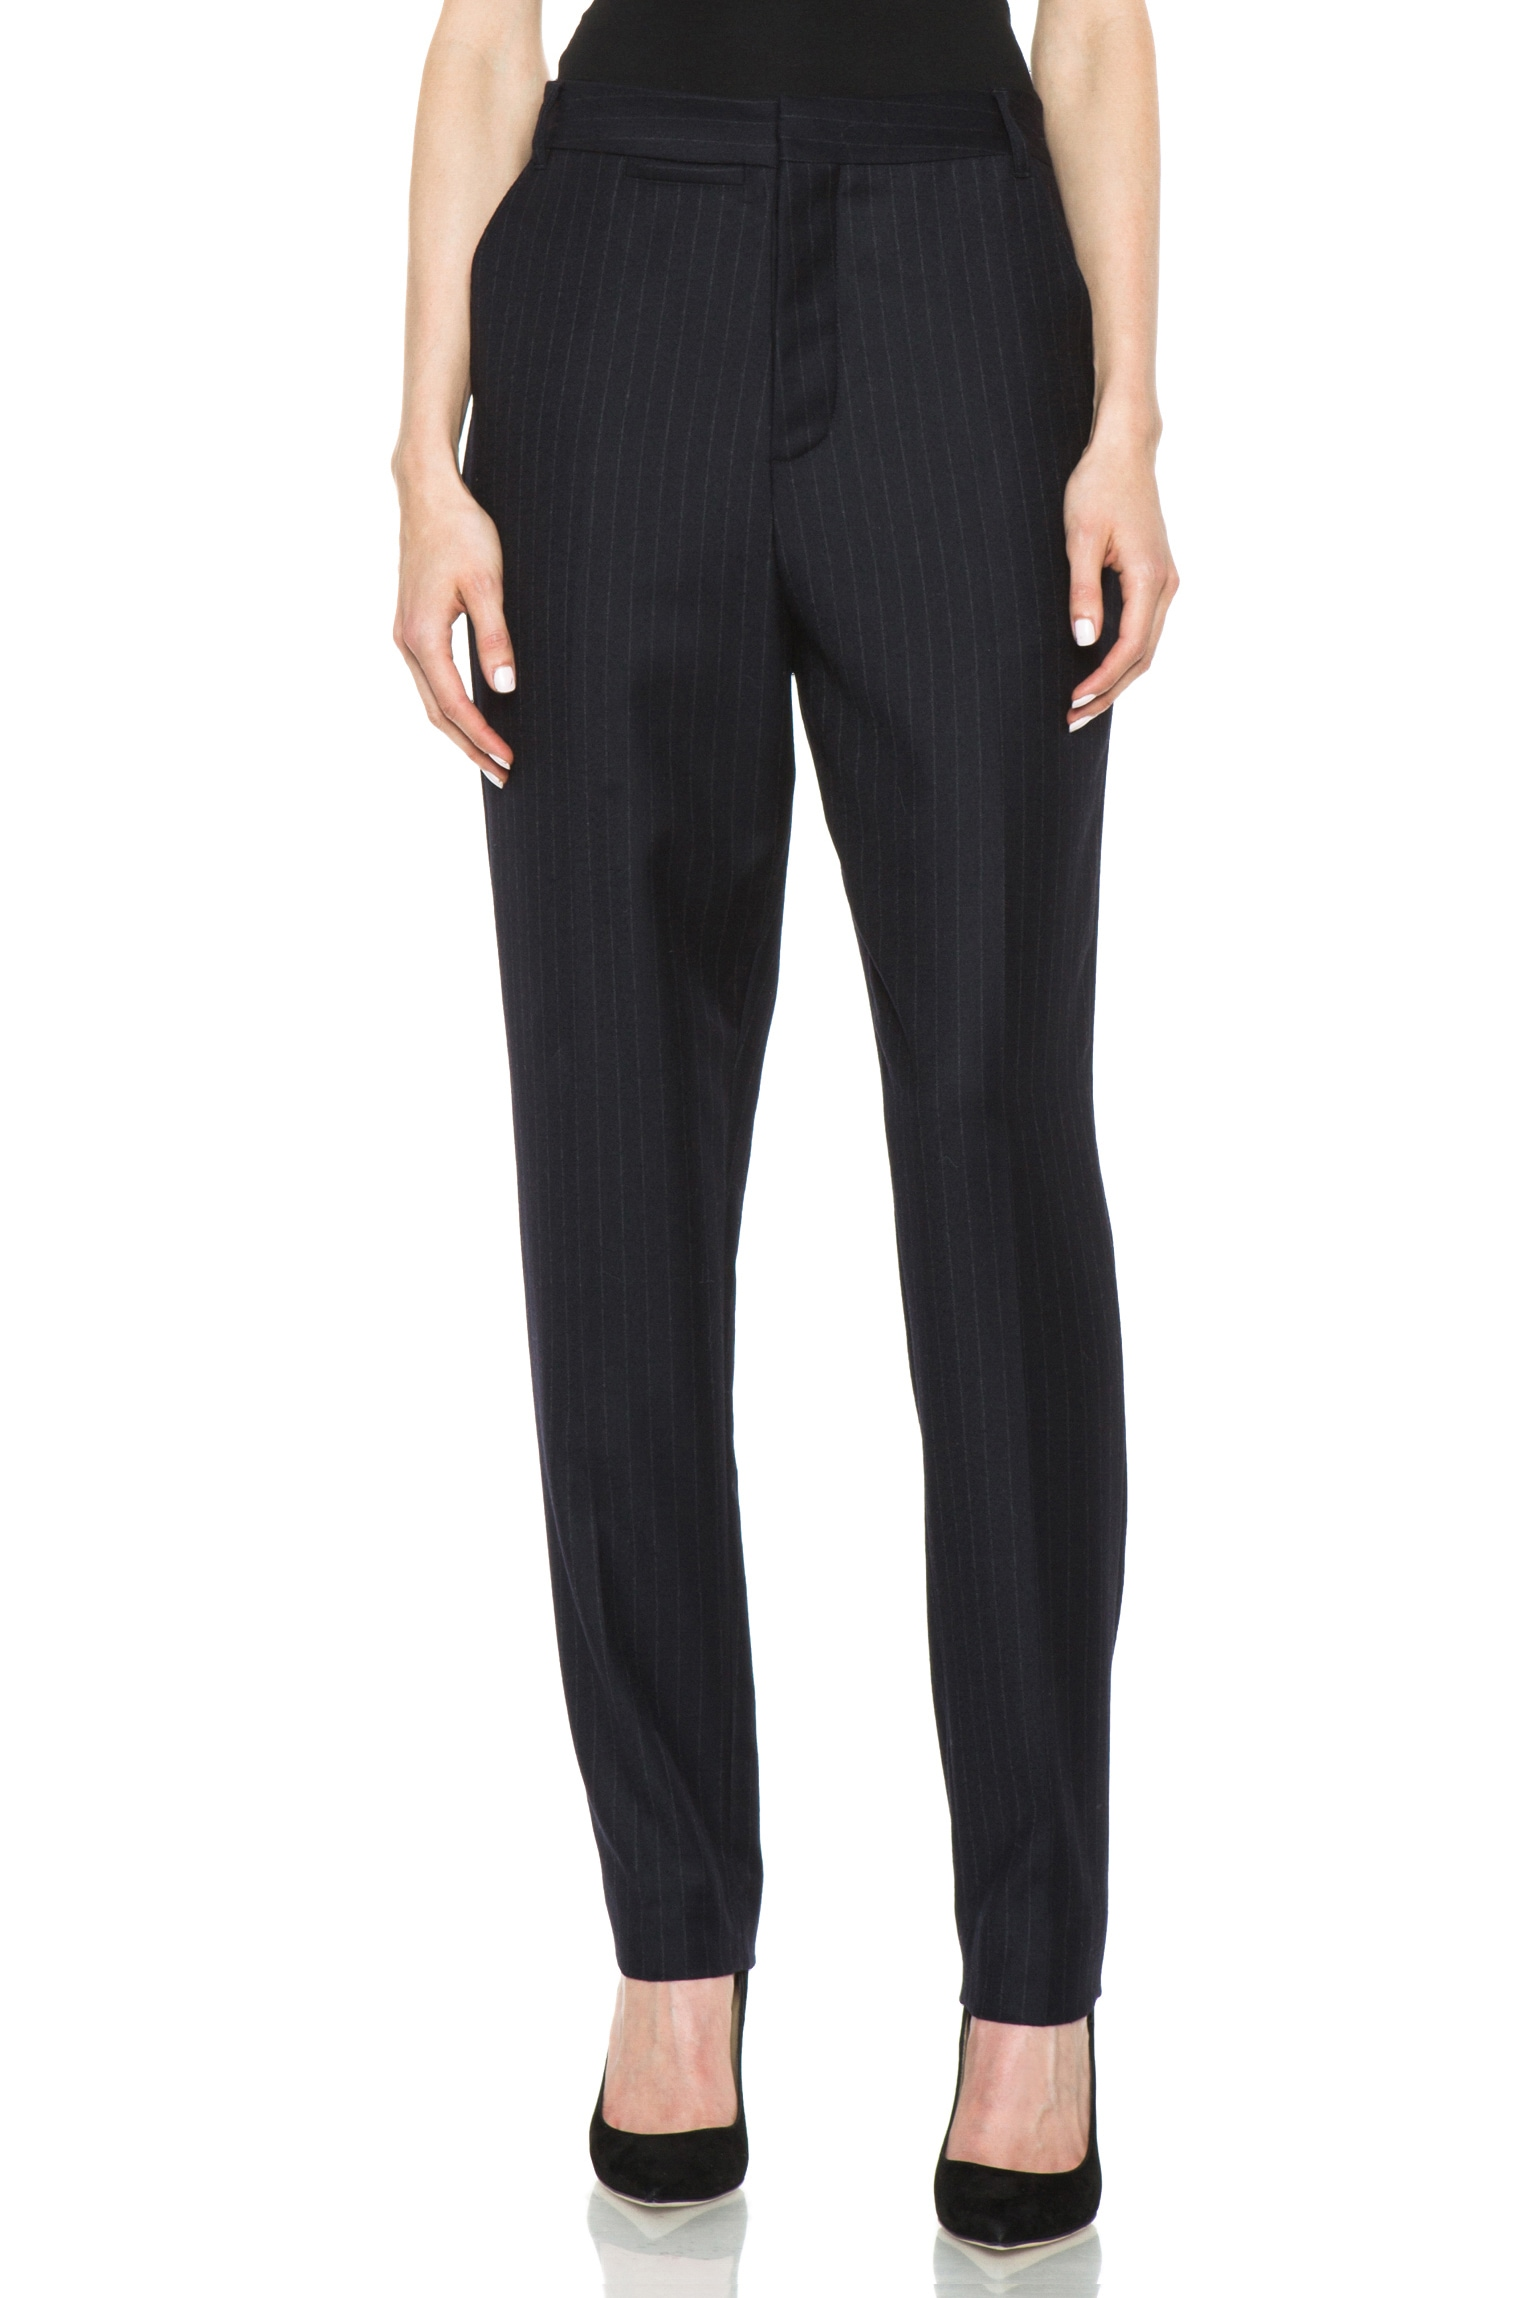 Image 1 of BLK DNM Dropped Crotch Flat Front Wool Pant in Navy Blue Pinstripe